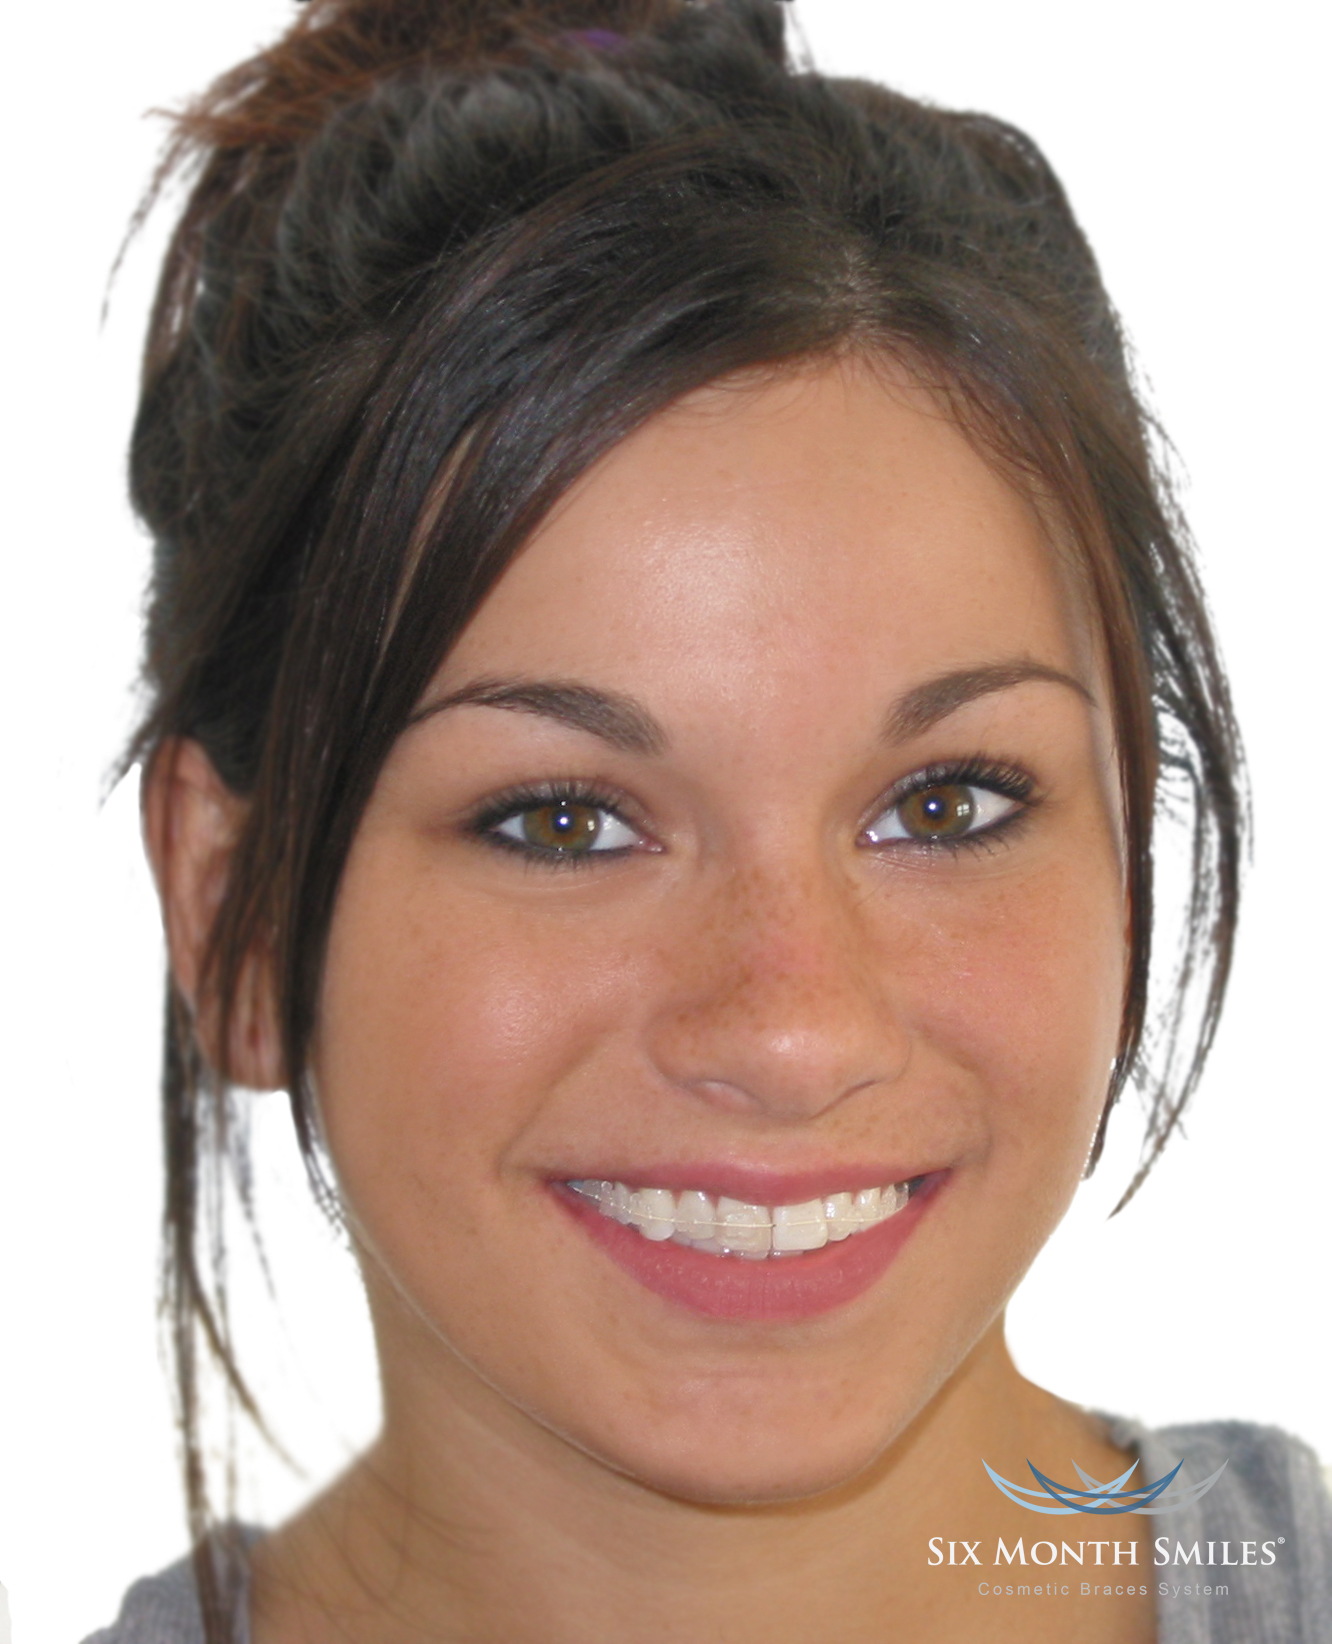 This patient is wearing cosmetic braces and treated in 6 months